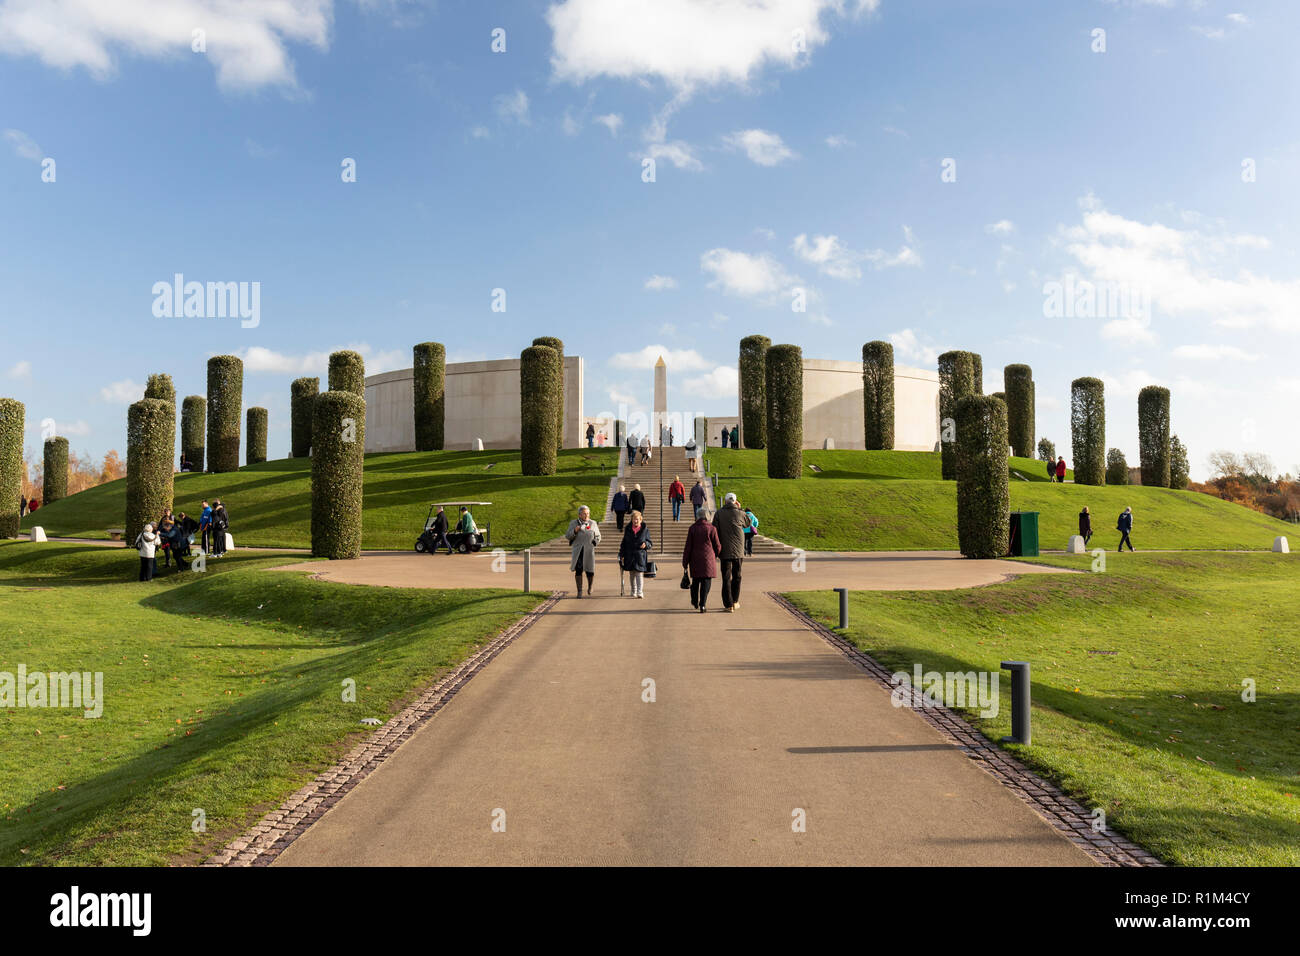 The Armed Forces Memorial, National Memorial Arboretum, Airewas, Staffordshire, England - Stock Image